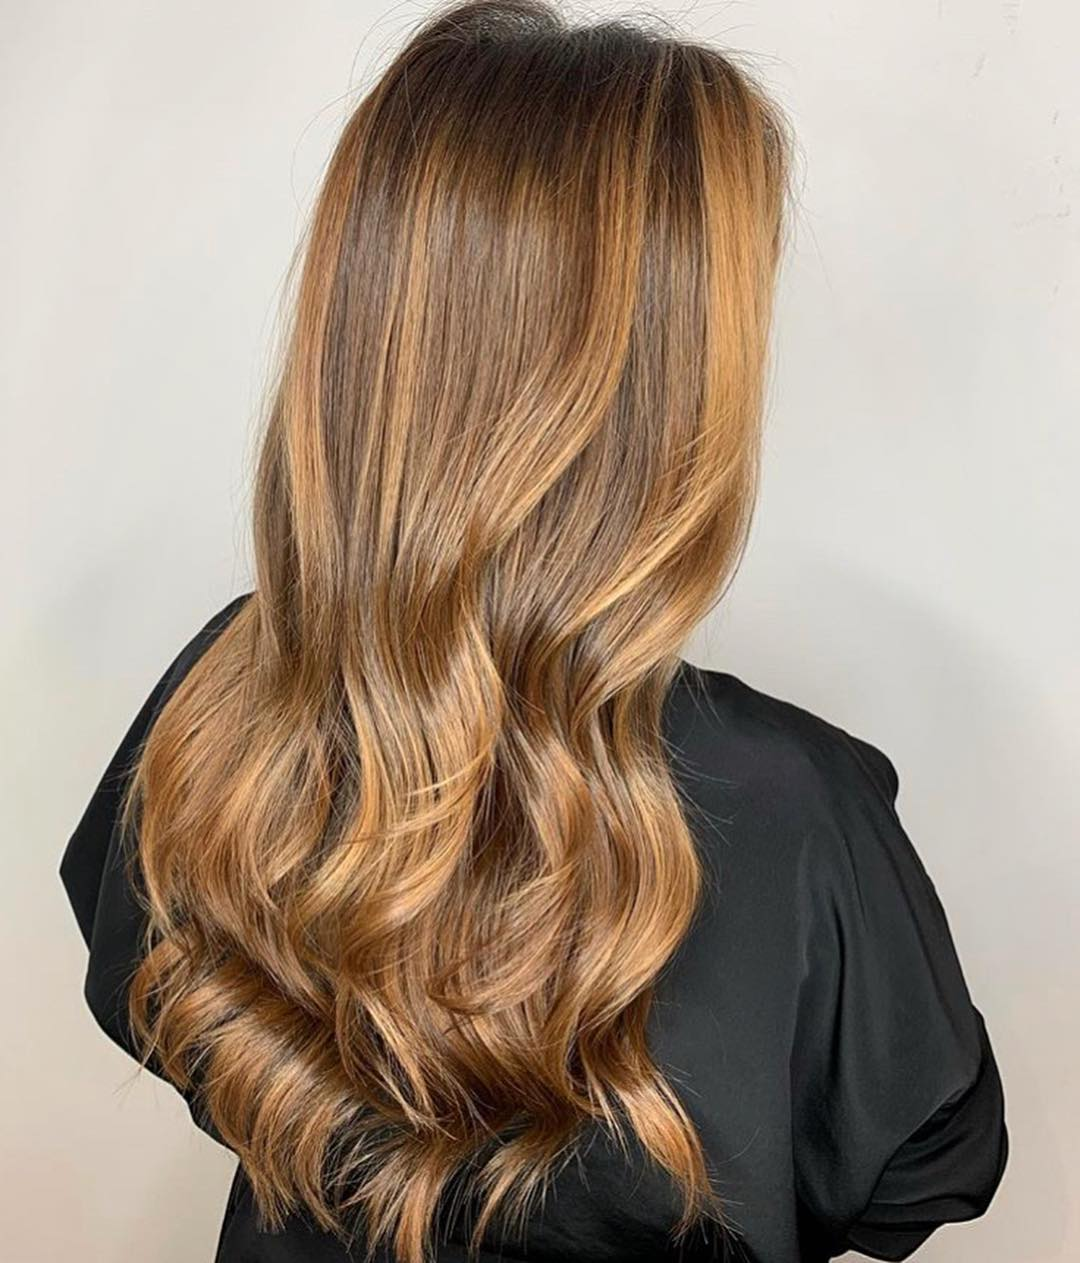 Shiny Brown Hair with Honey Highlights